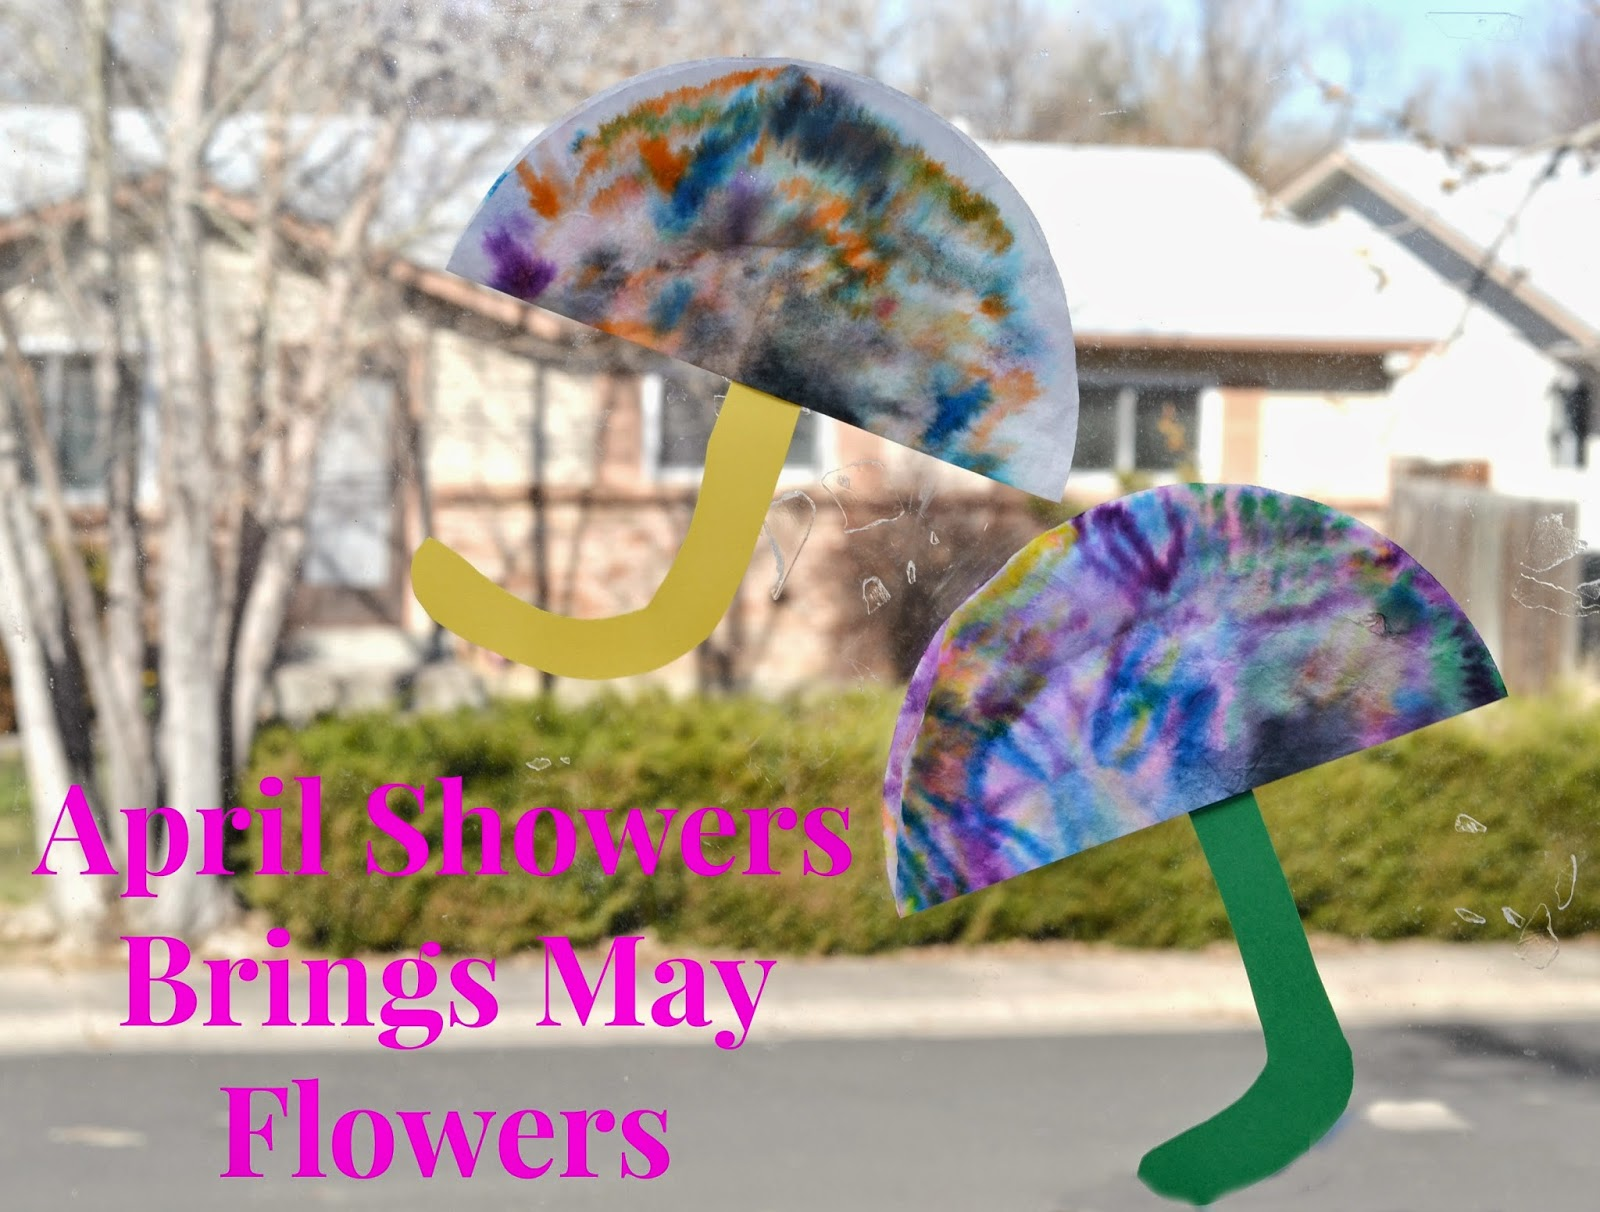 April Showers Brings May Flowers Coffee Filter Craft